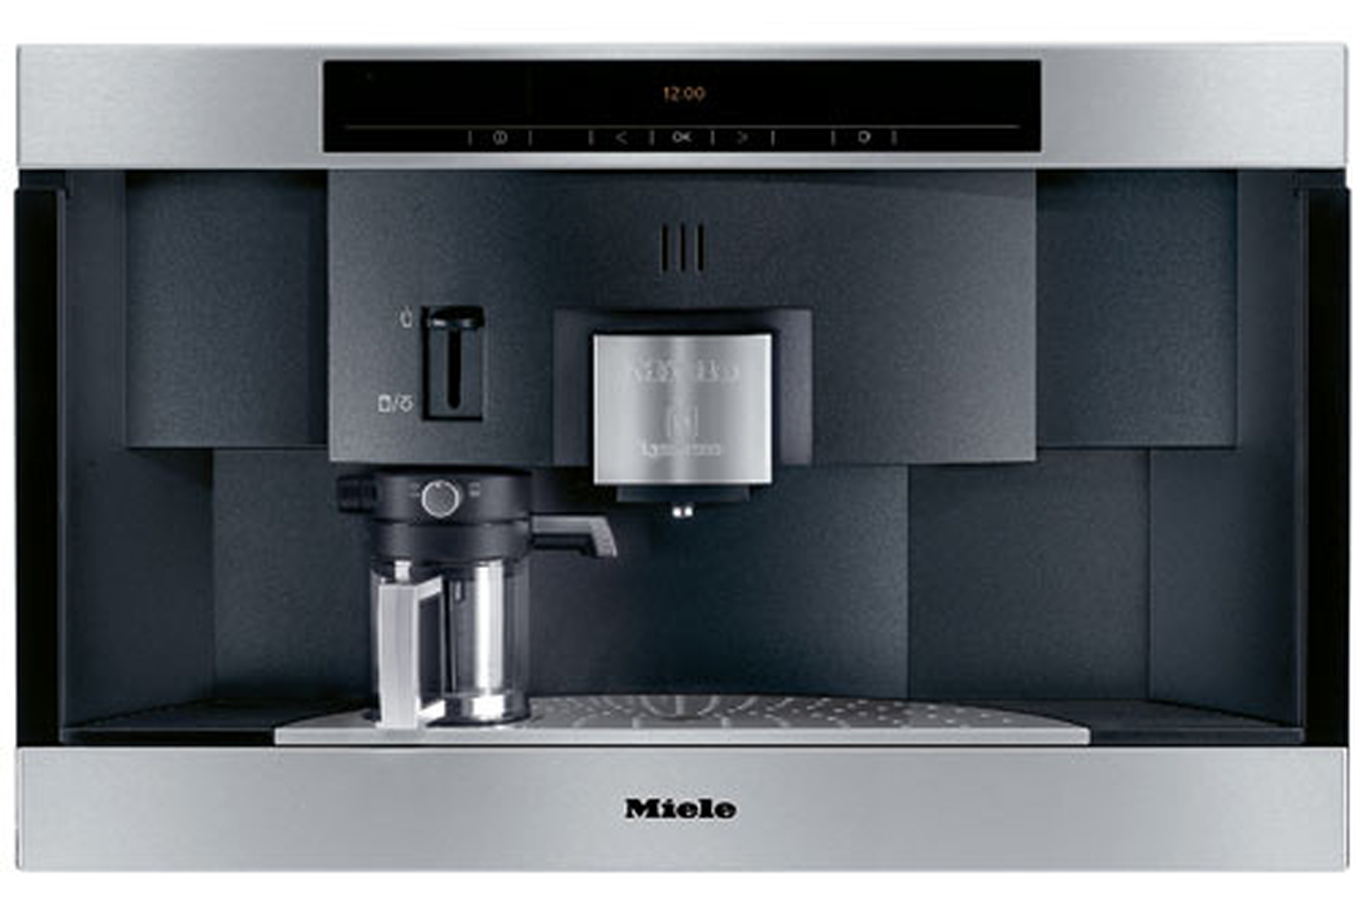 machine caf encastrable miele cva 3660 ix nespresso. Black Bedroom Furniture Sets. Home Design Ideas